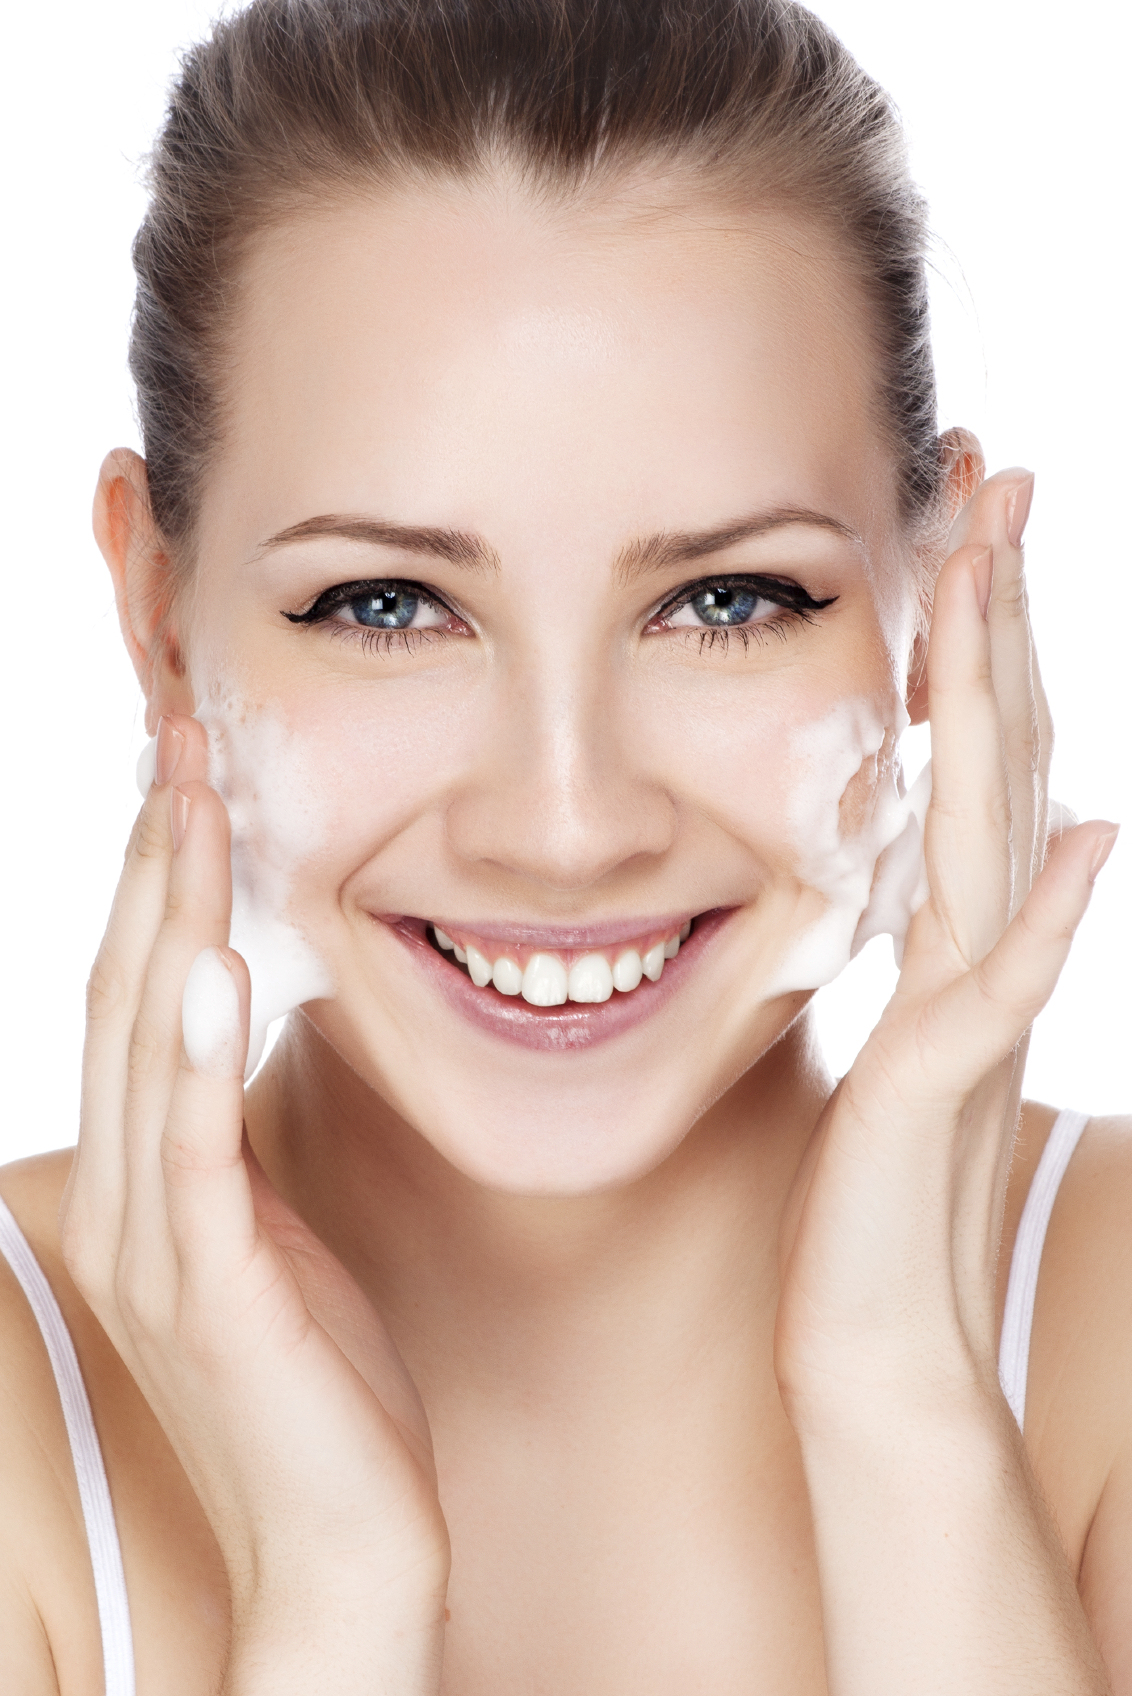 The sensitive muscles should also wash your face! 6 amino acid cleansing true evaluation, SK2 easy to use?